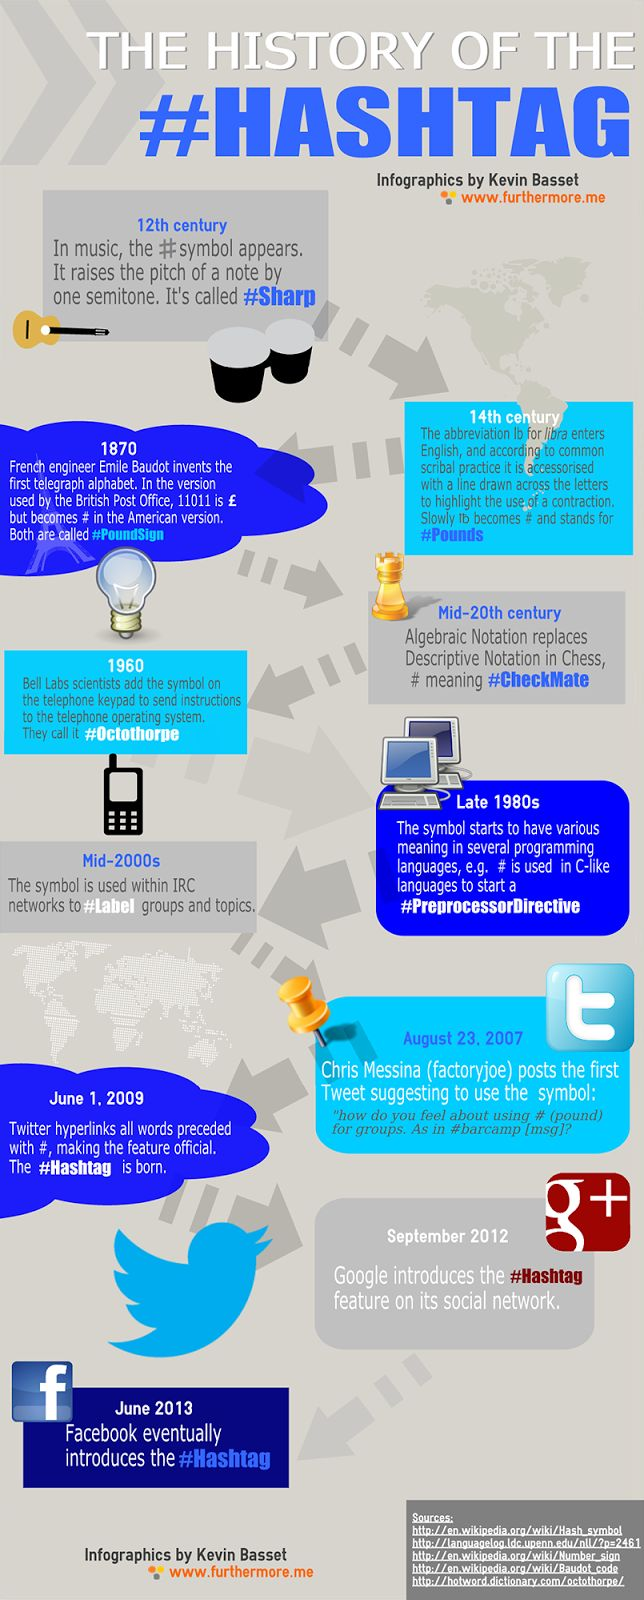 History of the #Hashtag #infographic